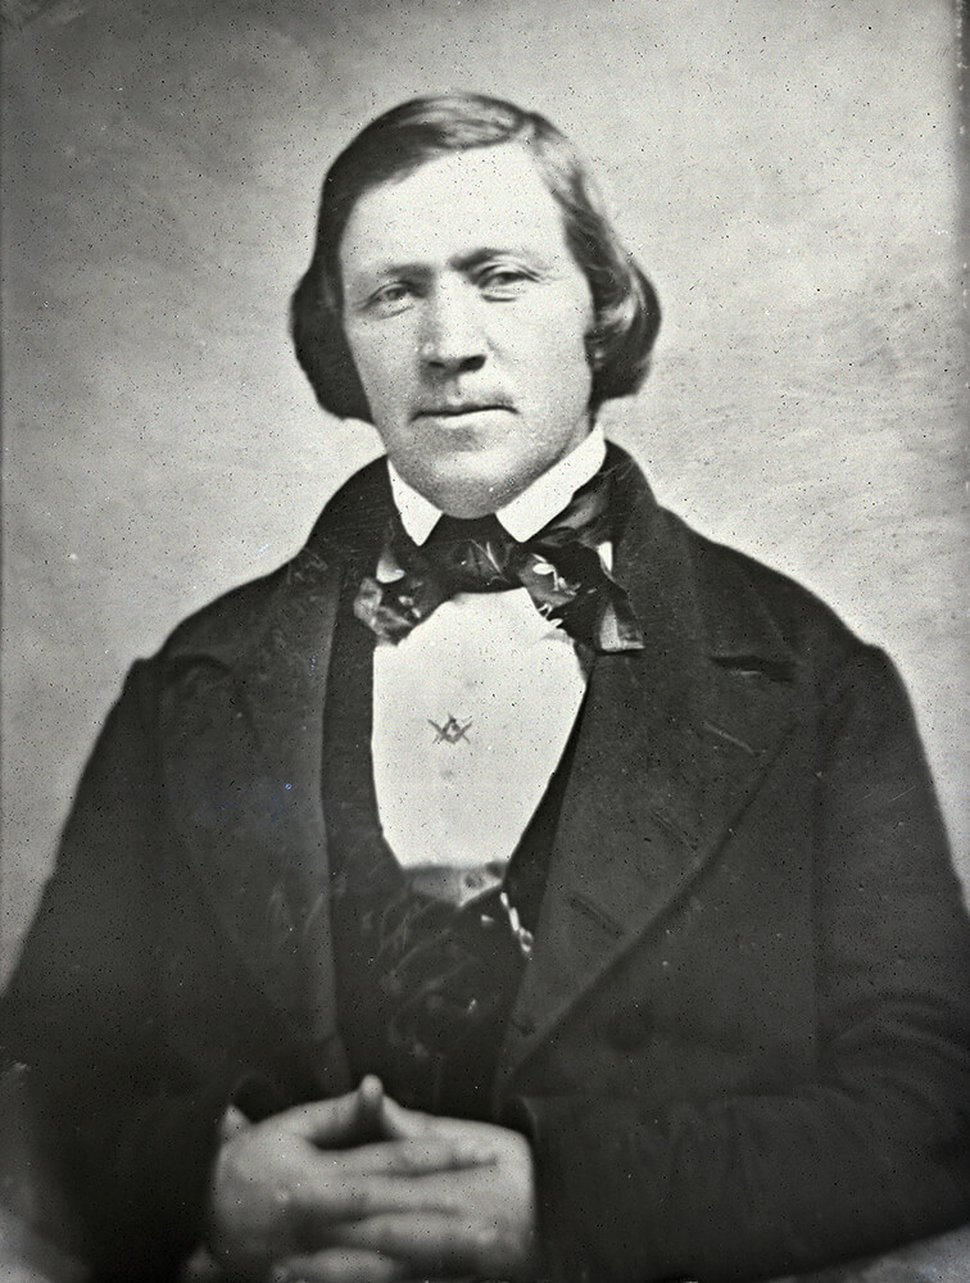 (Photo courtesy of The Church of Jesus Christ of Latter-day Saints) Brigham Young